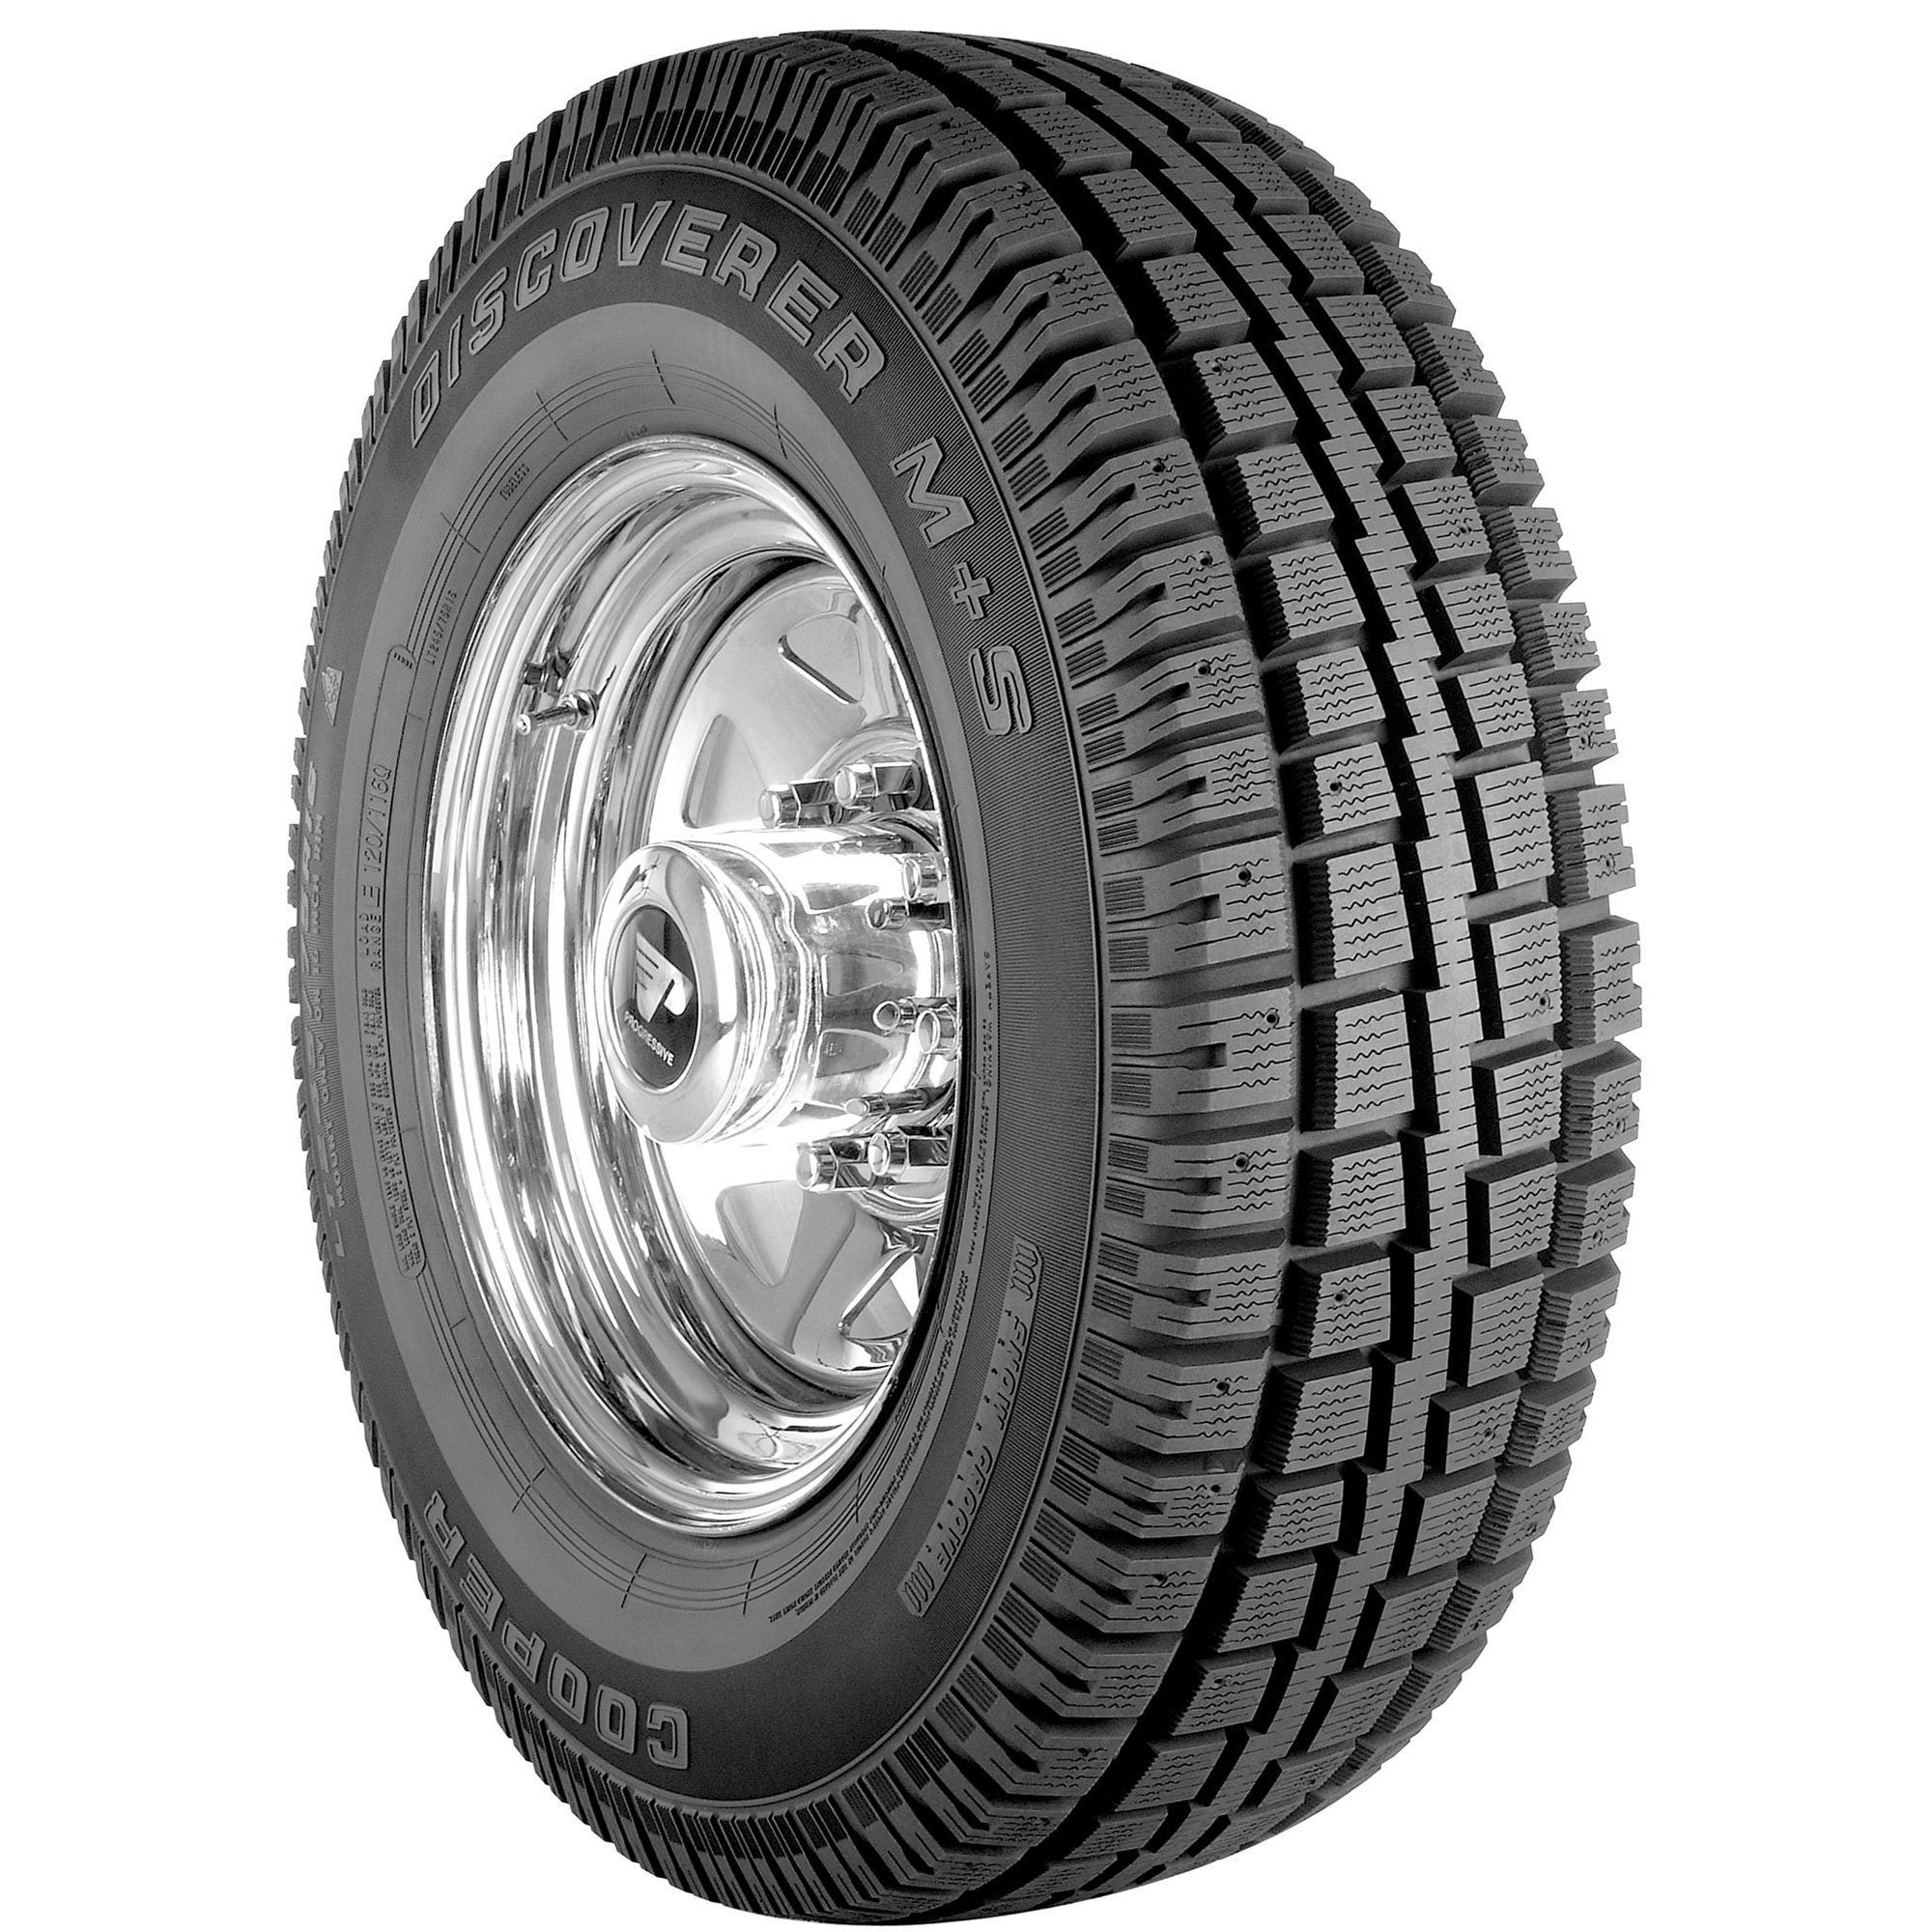 snow rated all terrain tires vs winter tires tirebuyer com rh tirebuyer com